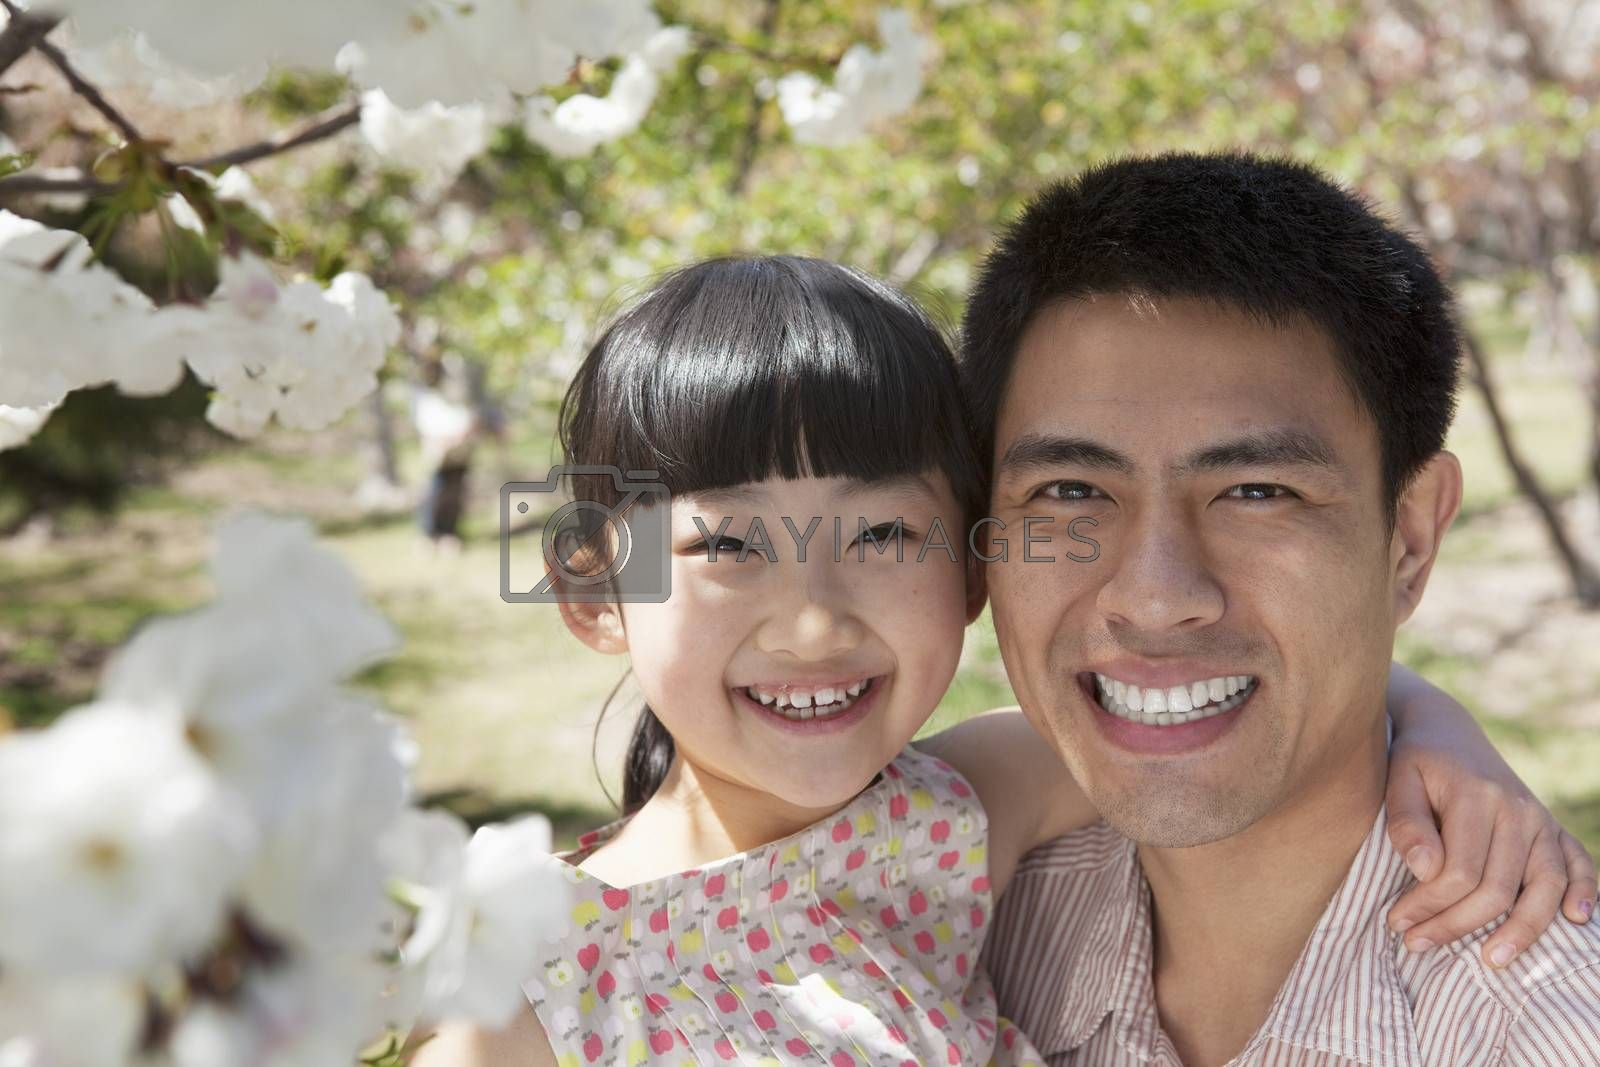 Smiling father and daughter enjoying the cherry blossoms on the tree in the park in springtime, portrait